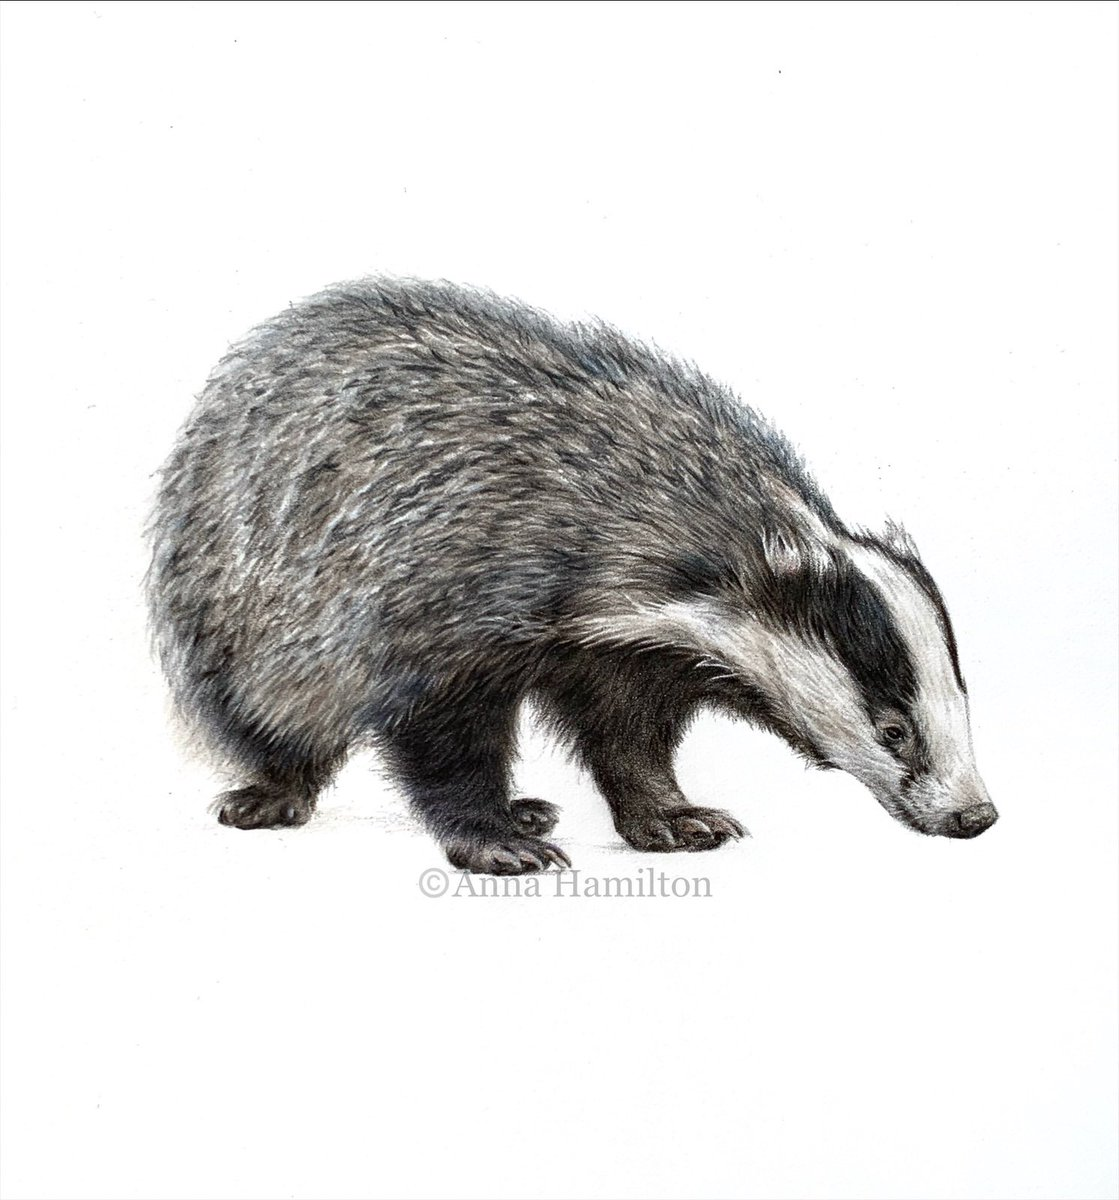 Gooood morning everyone, I was up early this morning and we have BLUE SKY 😍 so I'm feeling much more upbeat today.  Here's a gentle reminder of little Brock, whose limited edition prints are available on the website 💛    #badgers #animalartist